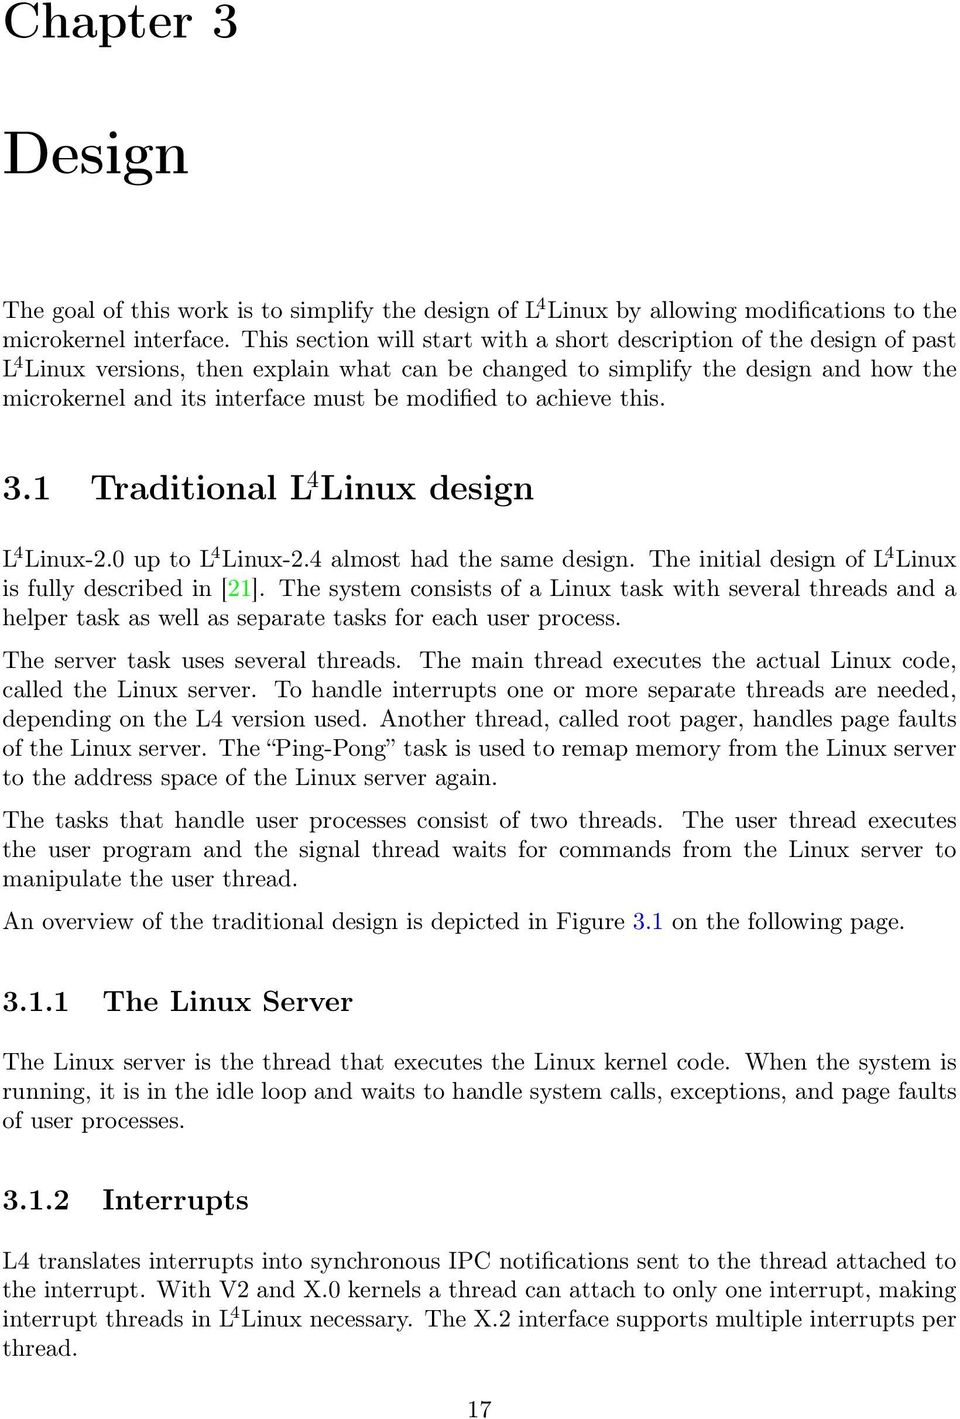 modified to achieve this. 3.1 Traditional L 4 Linux design L 4 Linux-2.0 up to L 4 Linux-2.4 almost had the same design. The initial design of L 4 Linux is fully described in [21].